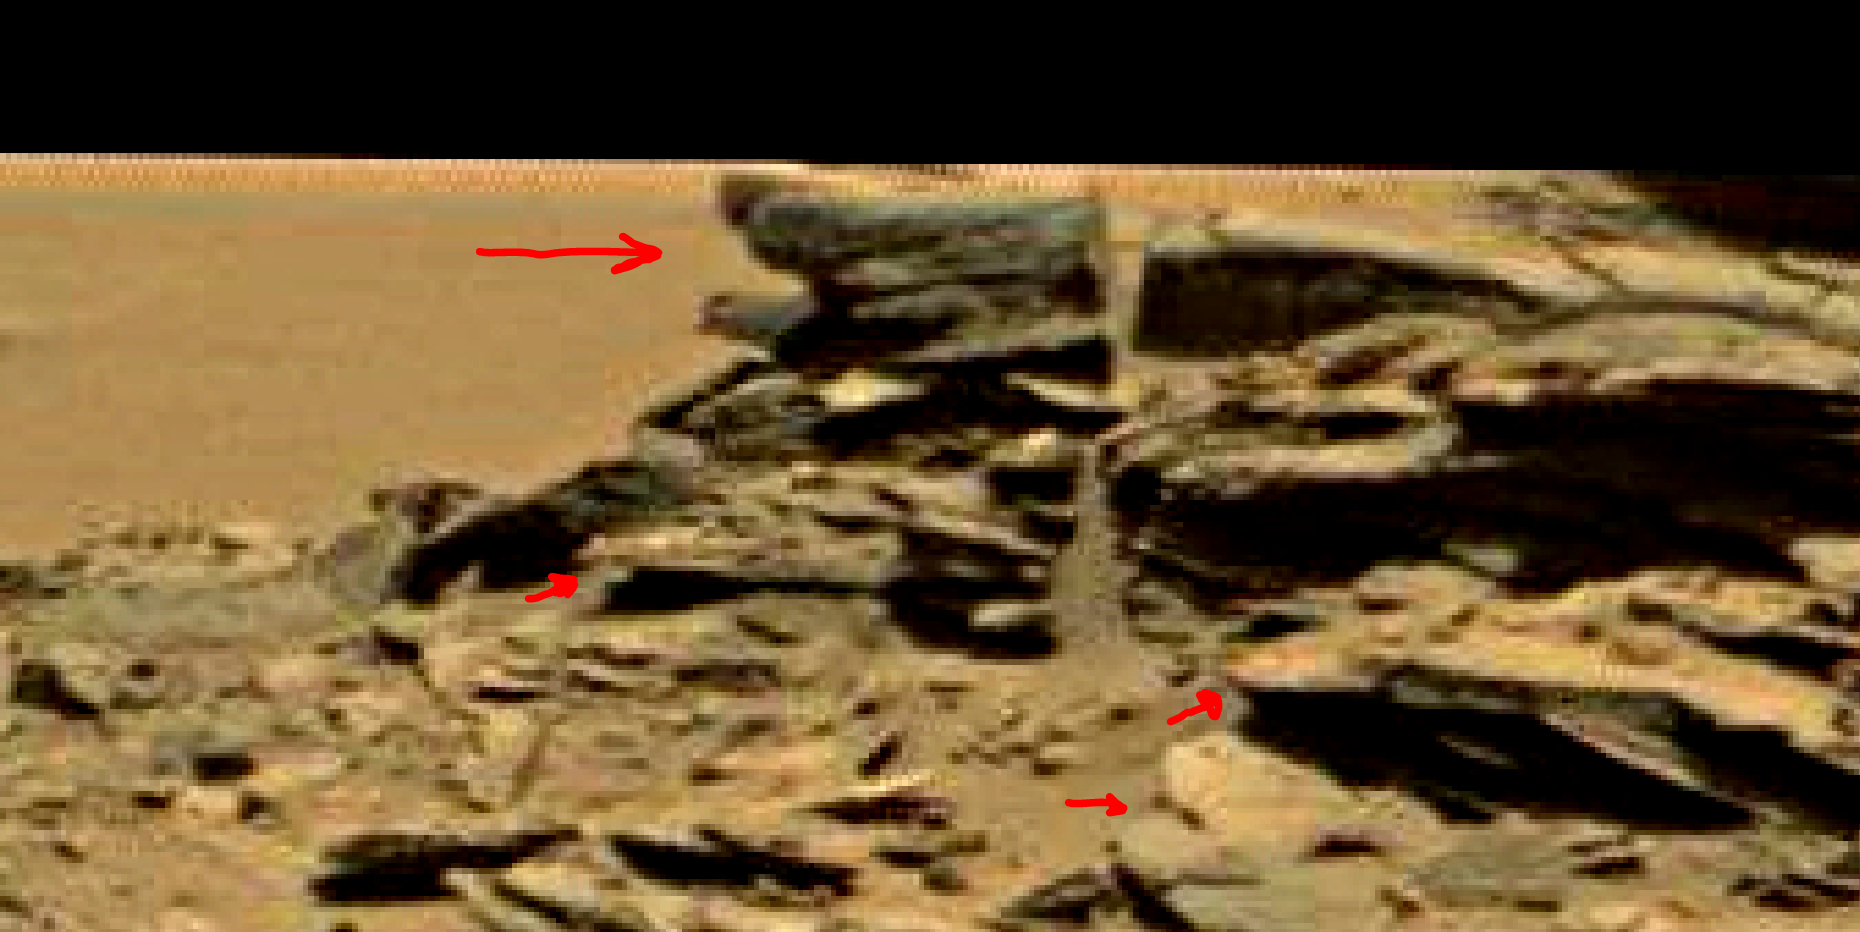 mars sol 1353 anomaly-artifacts 54a1 was life on mars